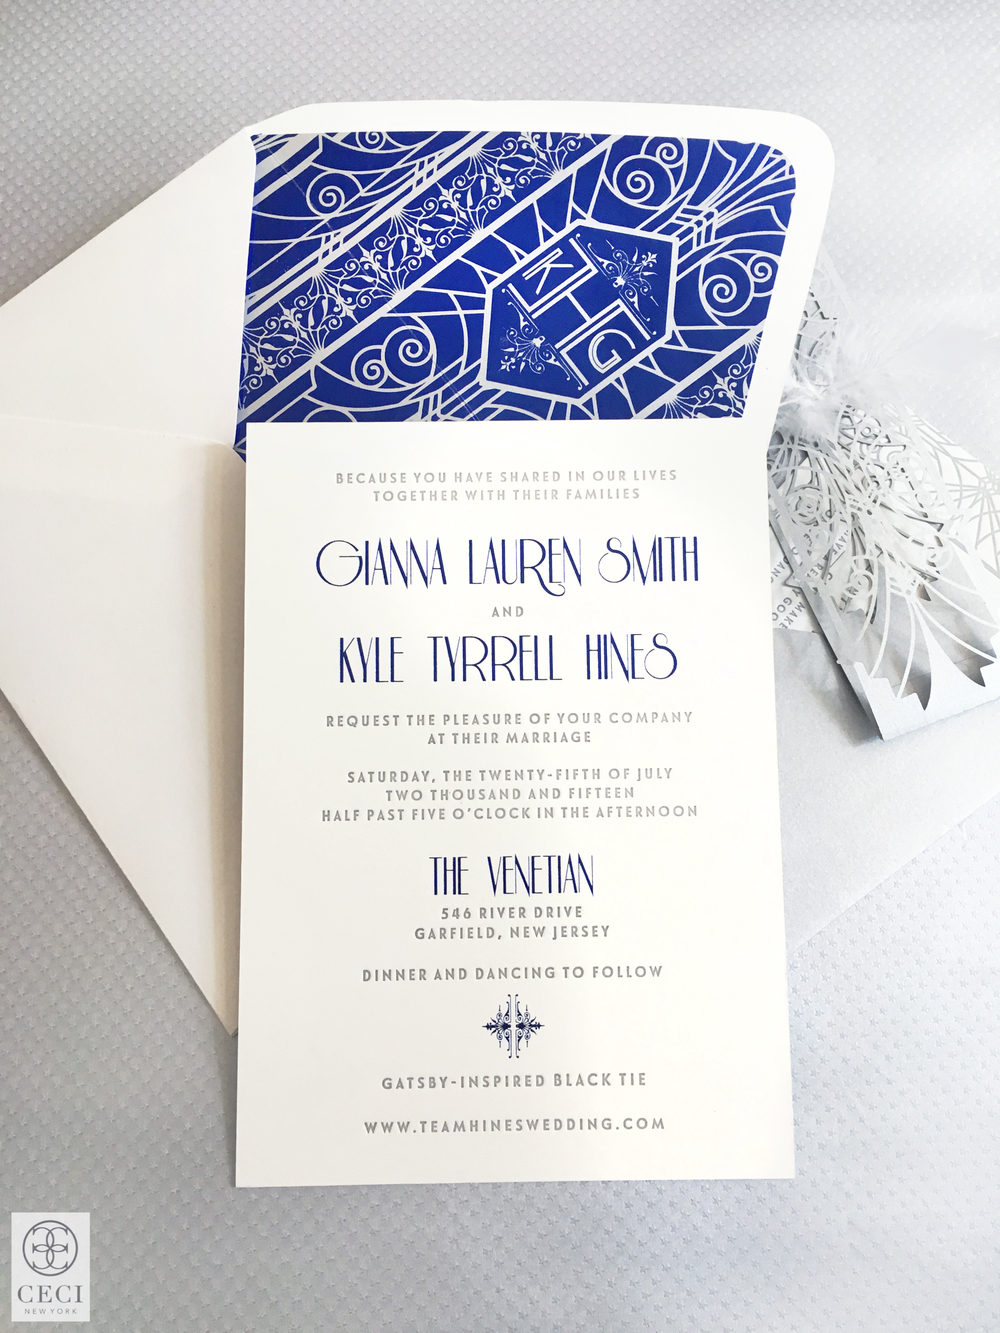 Ceci_New_York_New_Jersey_Invitations_Wedding_New_York_Elegance_Silver_Blue_Letterpress_Deco_Classic_Foil_Stamping_Custom_Couture_Personalized-29.jpg